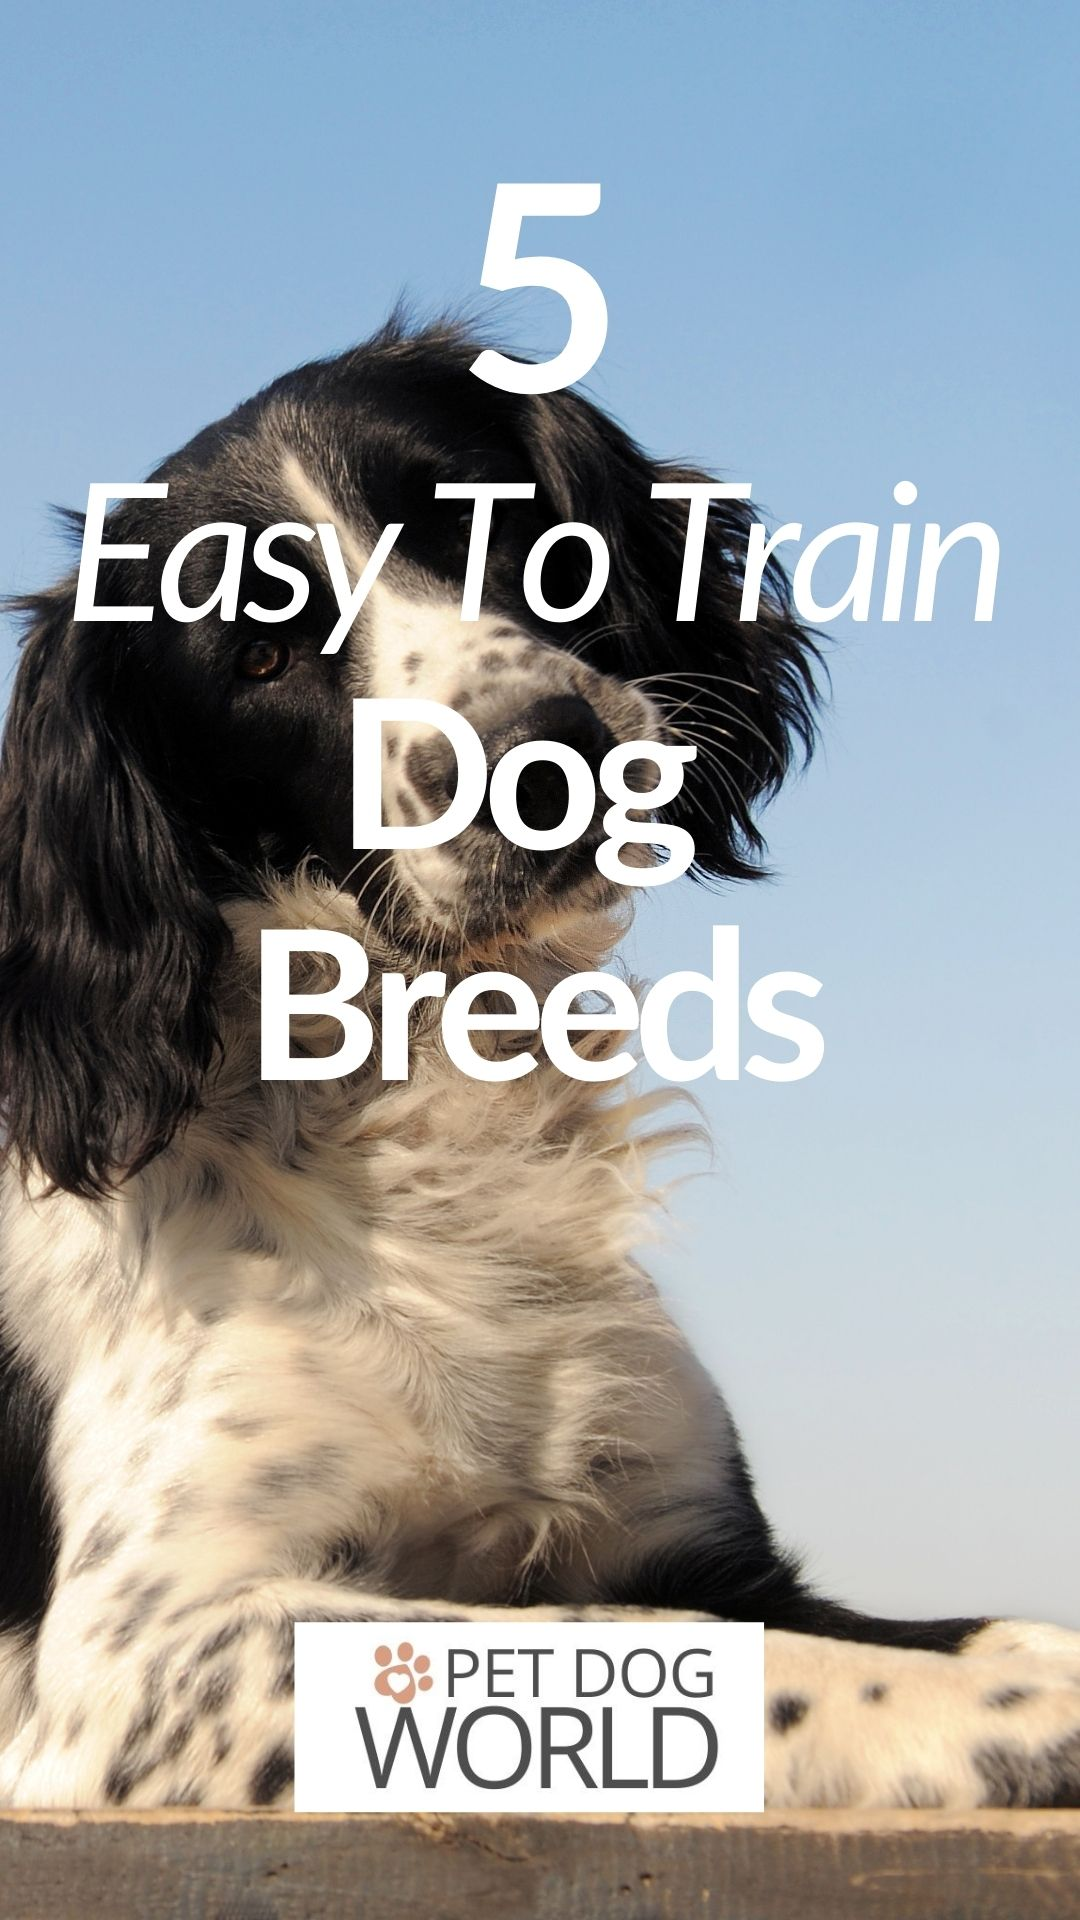 Between so many choices, sometimes it can be hard to choose the ideal breed. But here are 5 of the most trainable dogs.